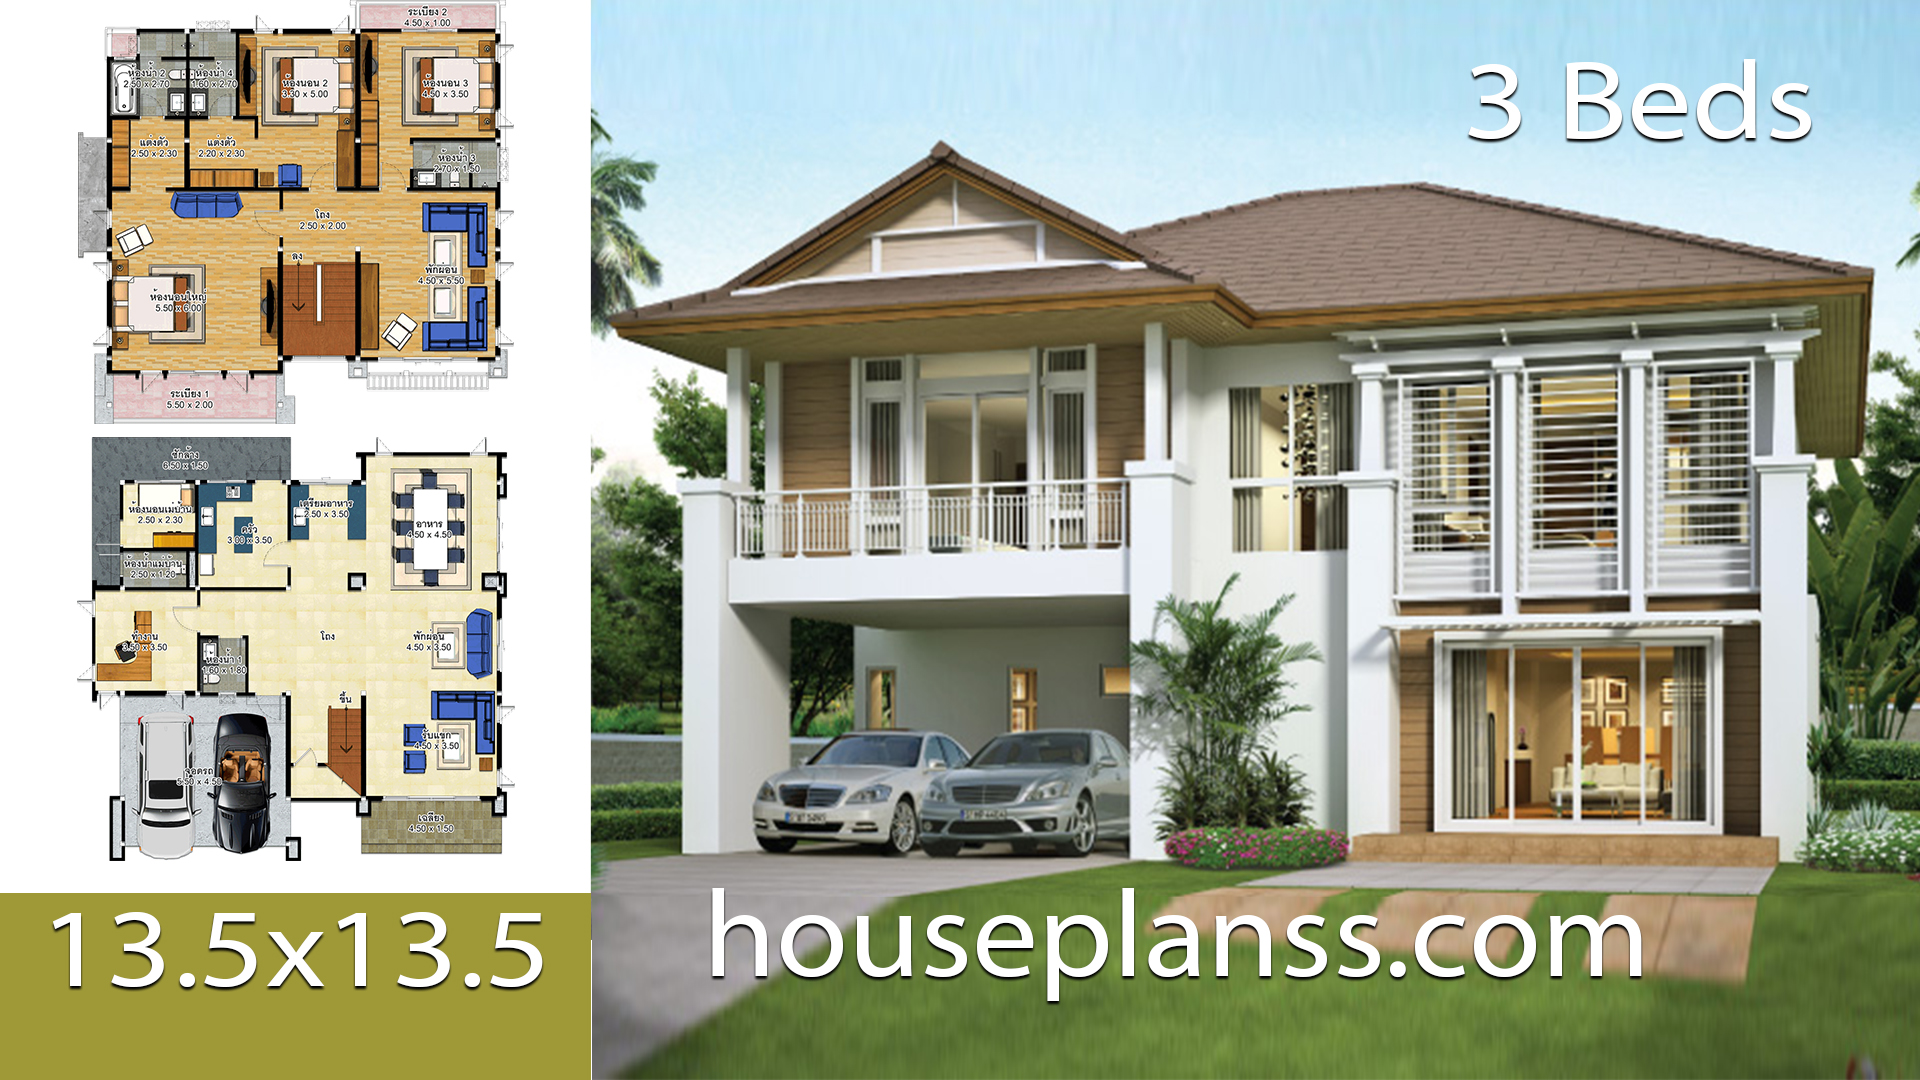 House design idea 13.5×13.5 with 3 bedrooms